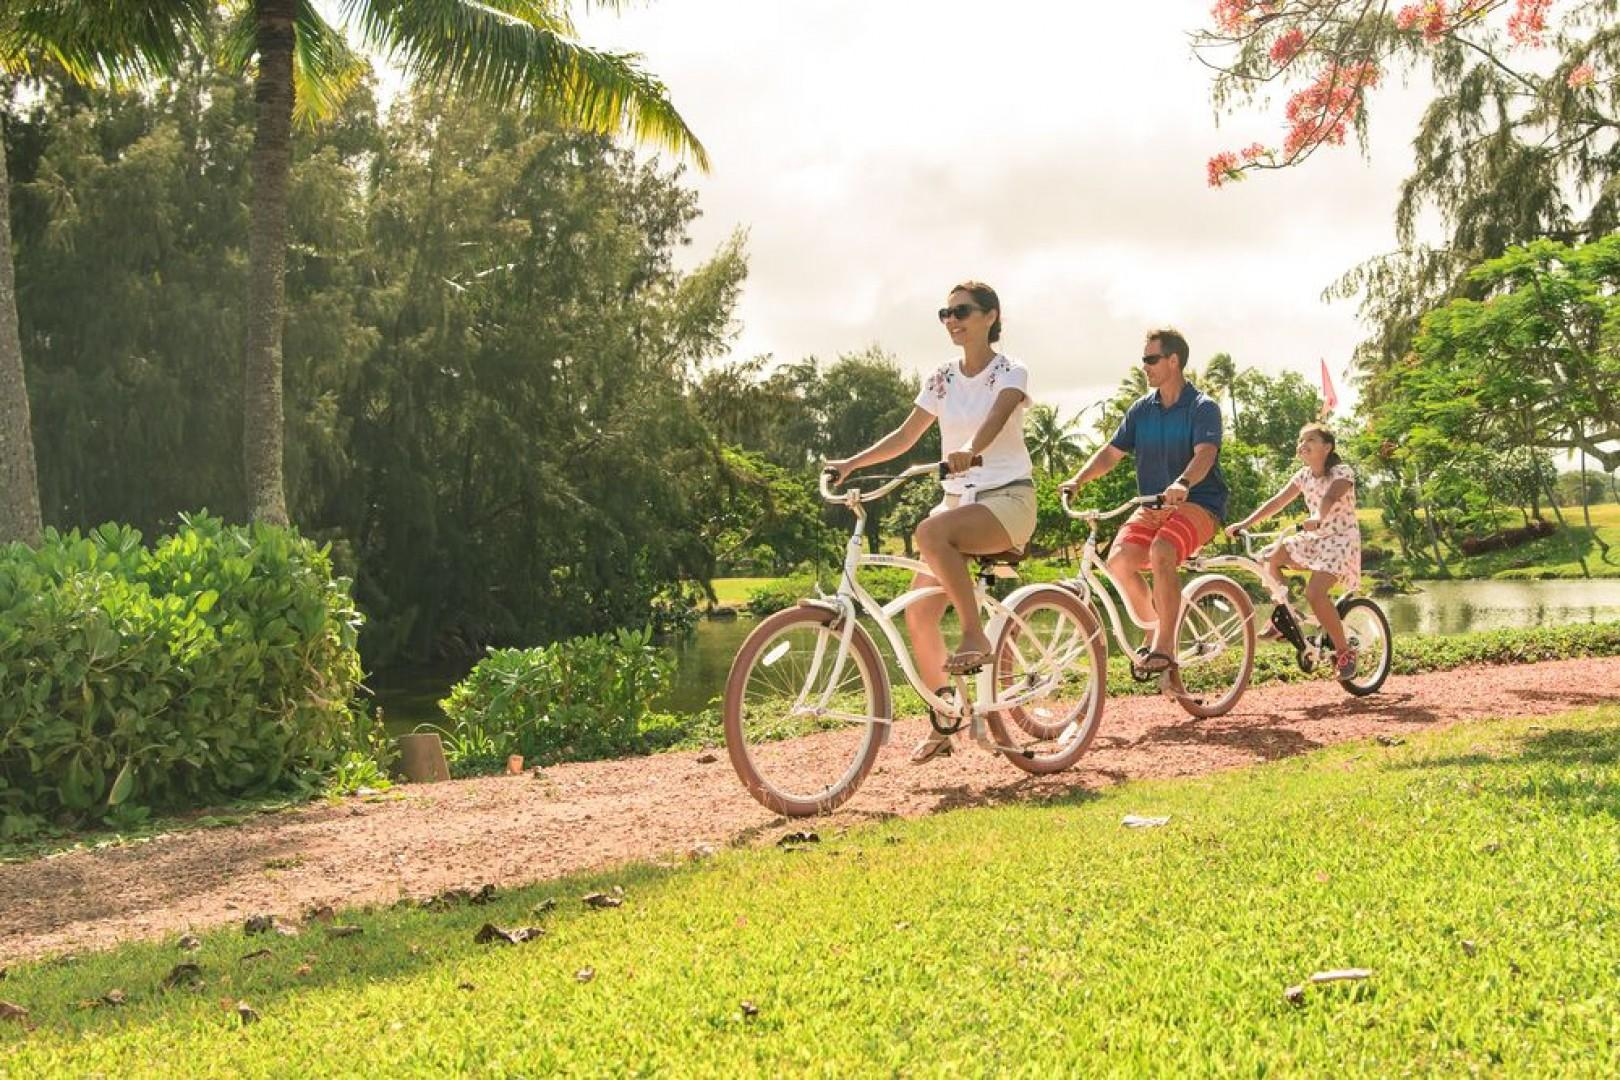 Hokuala also offers a variety of island adventures and activities.